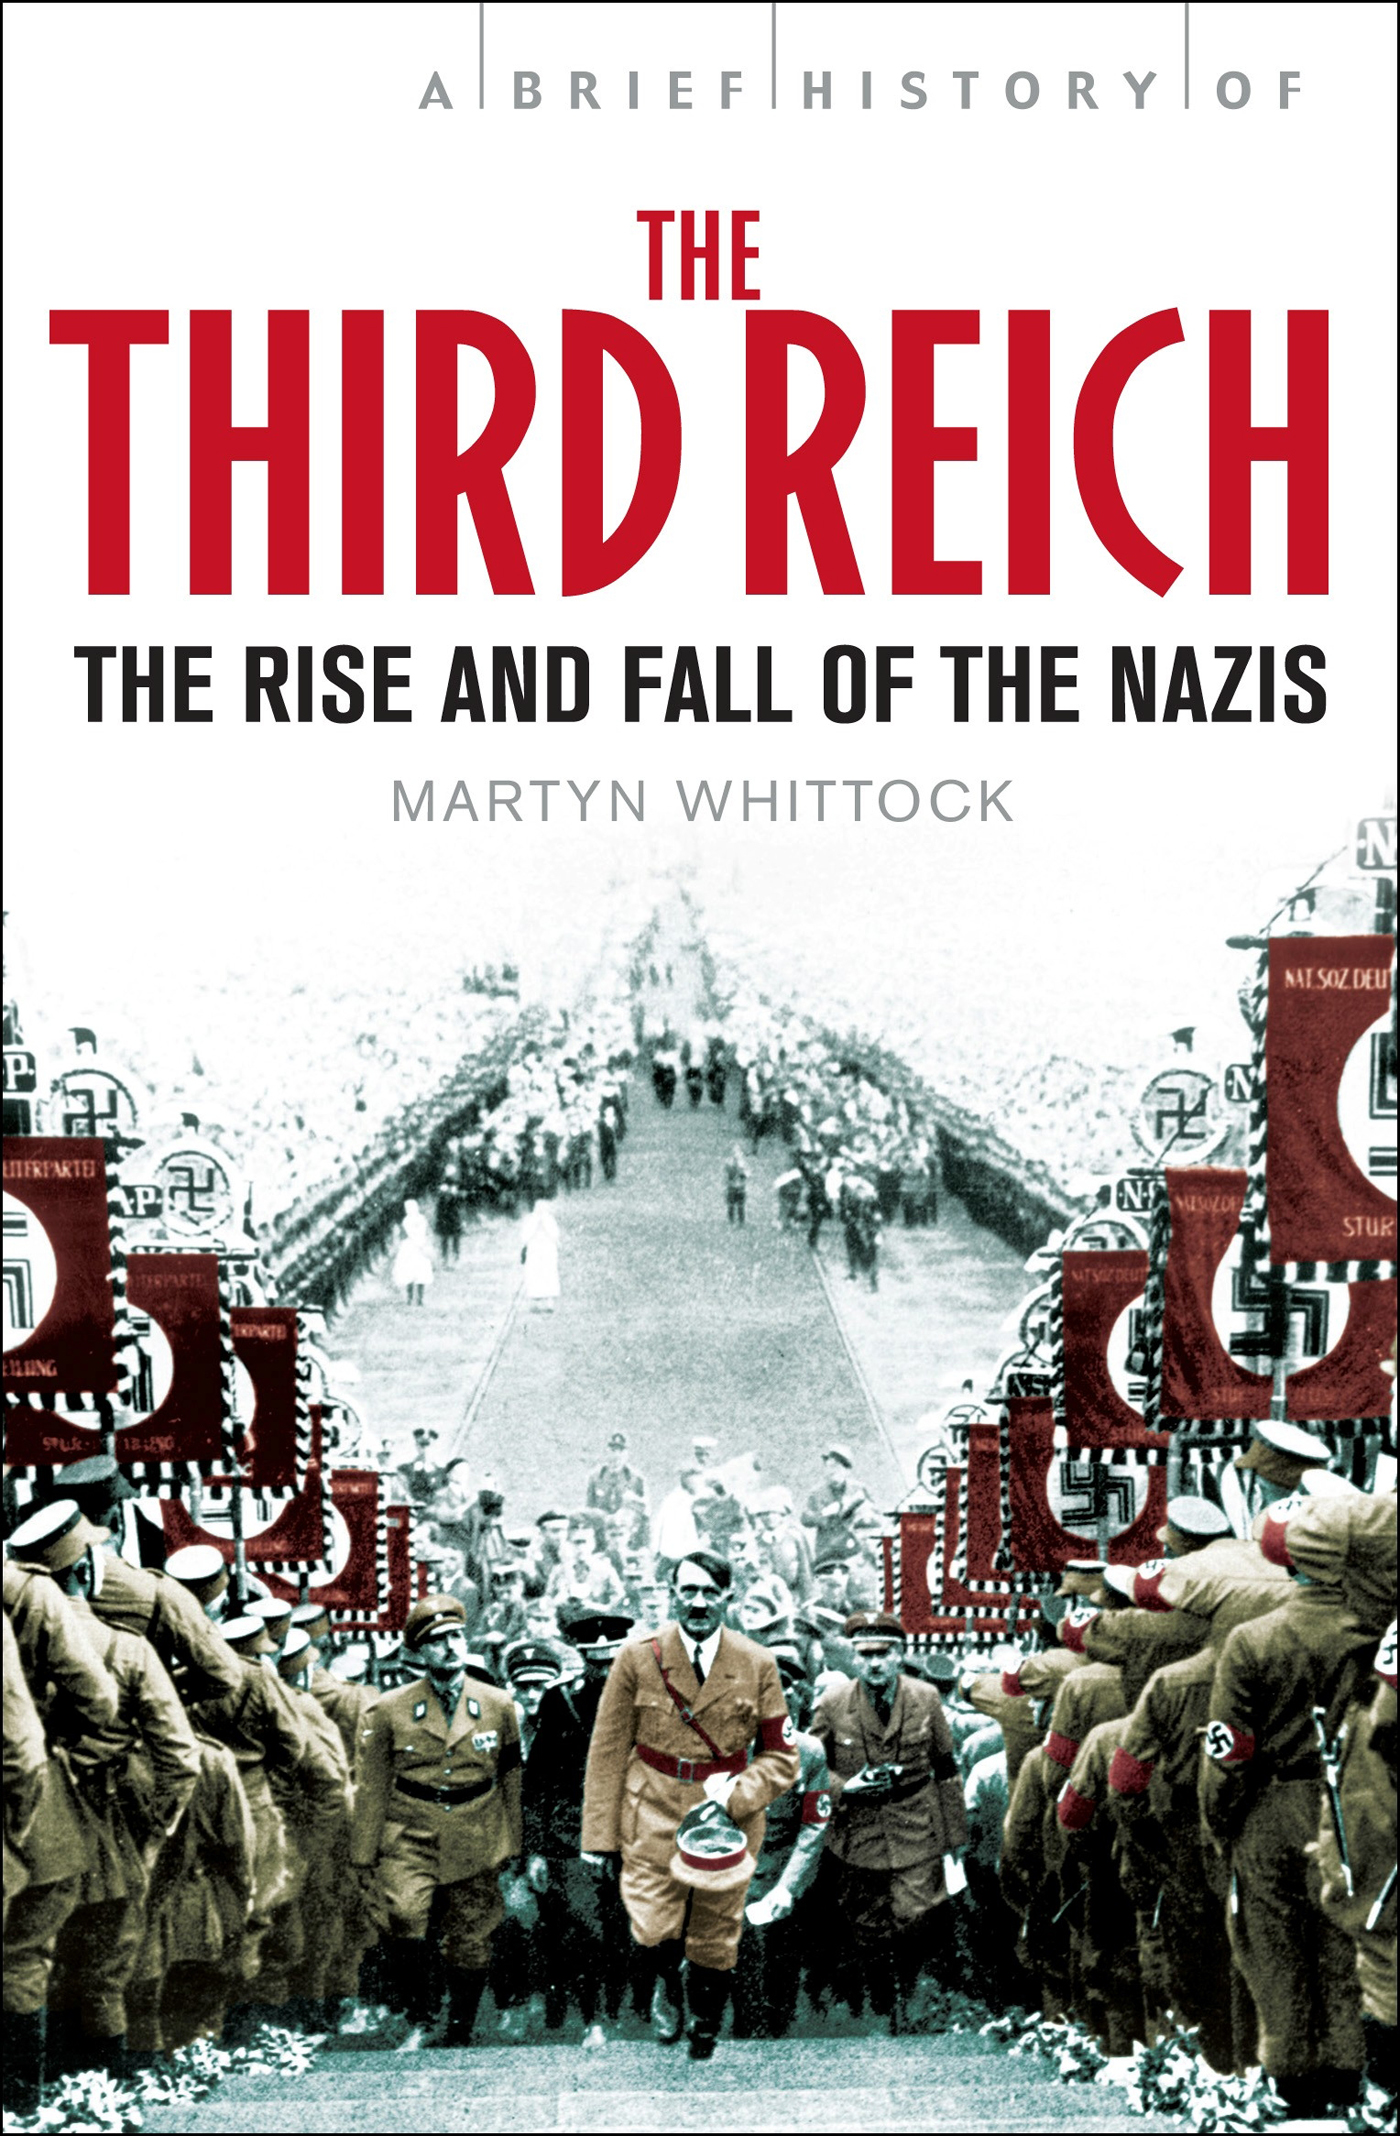 us contribution in the eventual downfall of the third reich That in itself was a major contribution to shirer shows us adapted from ron rosenbaum's introduction to the new edition of the rise and fall of the third reich.